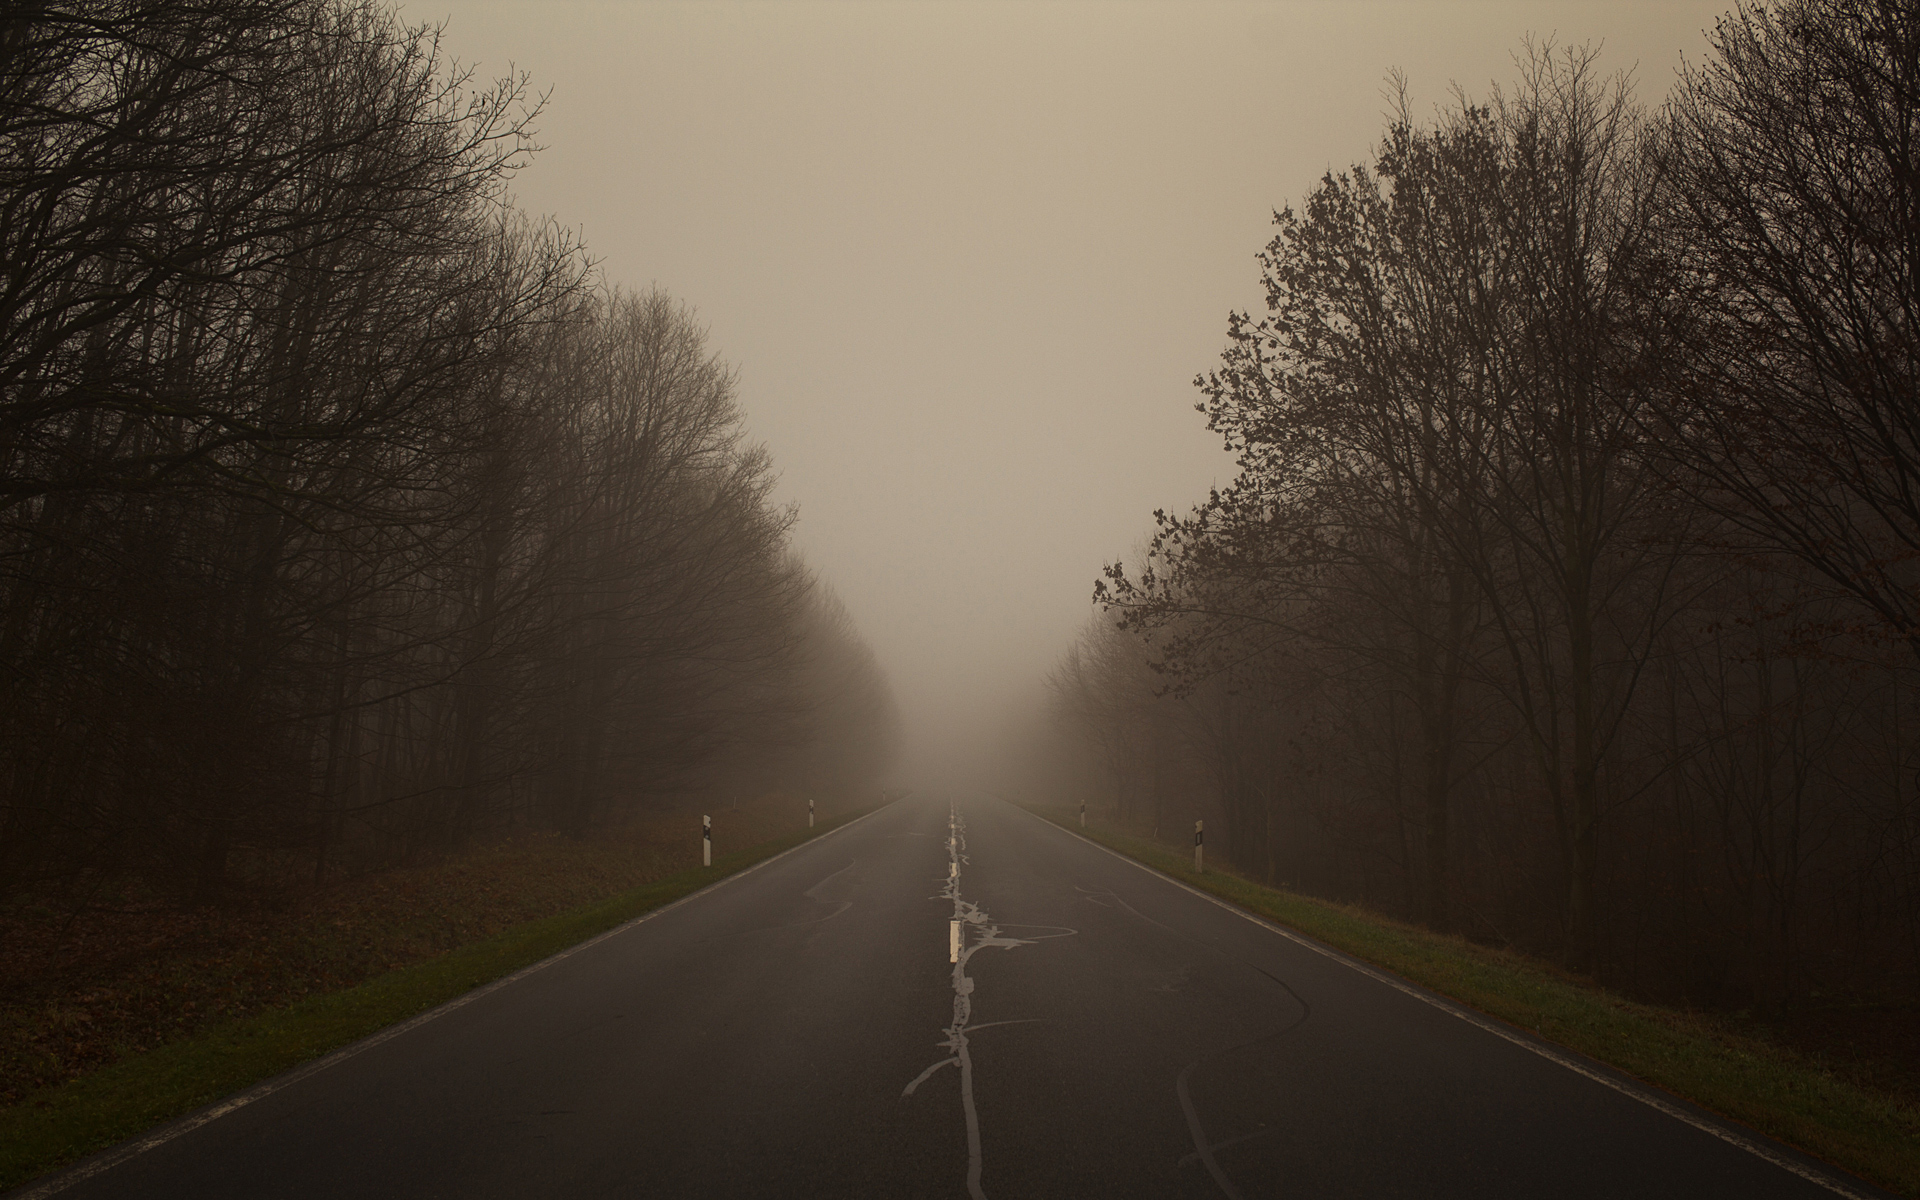 Road disappearing into the mist wallpaper.